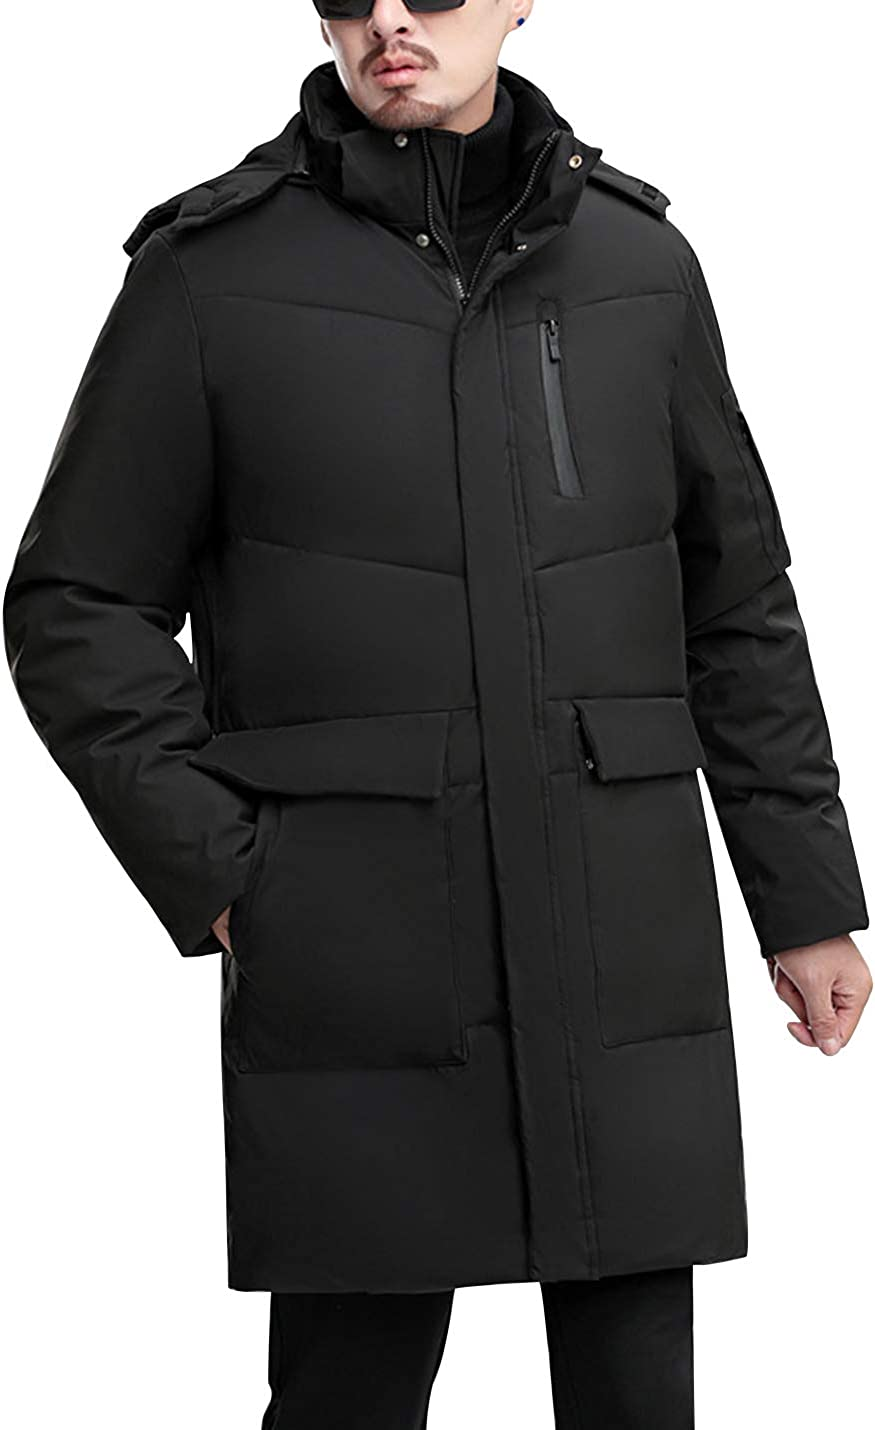 Gihuo Men's Winter Thick Padded Quilted Puffer Jacket Coat with Detachable Hood